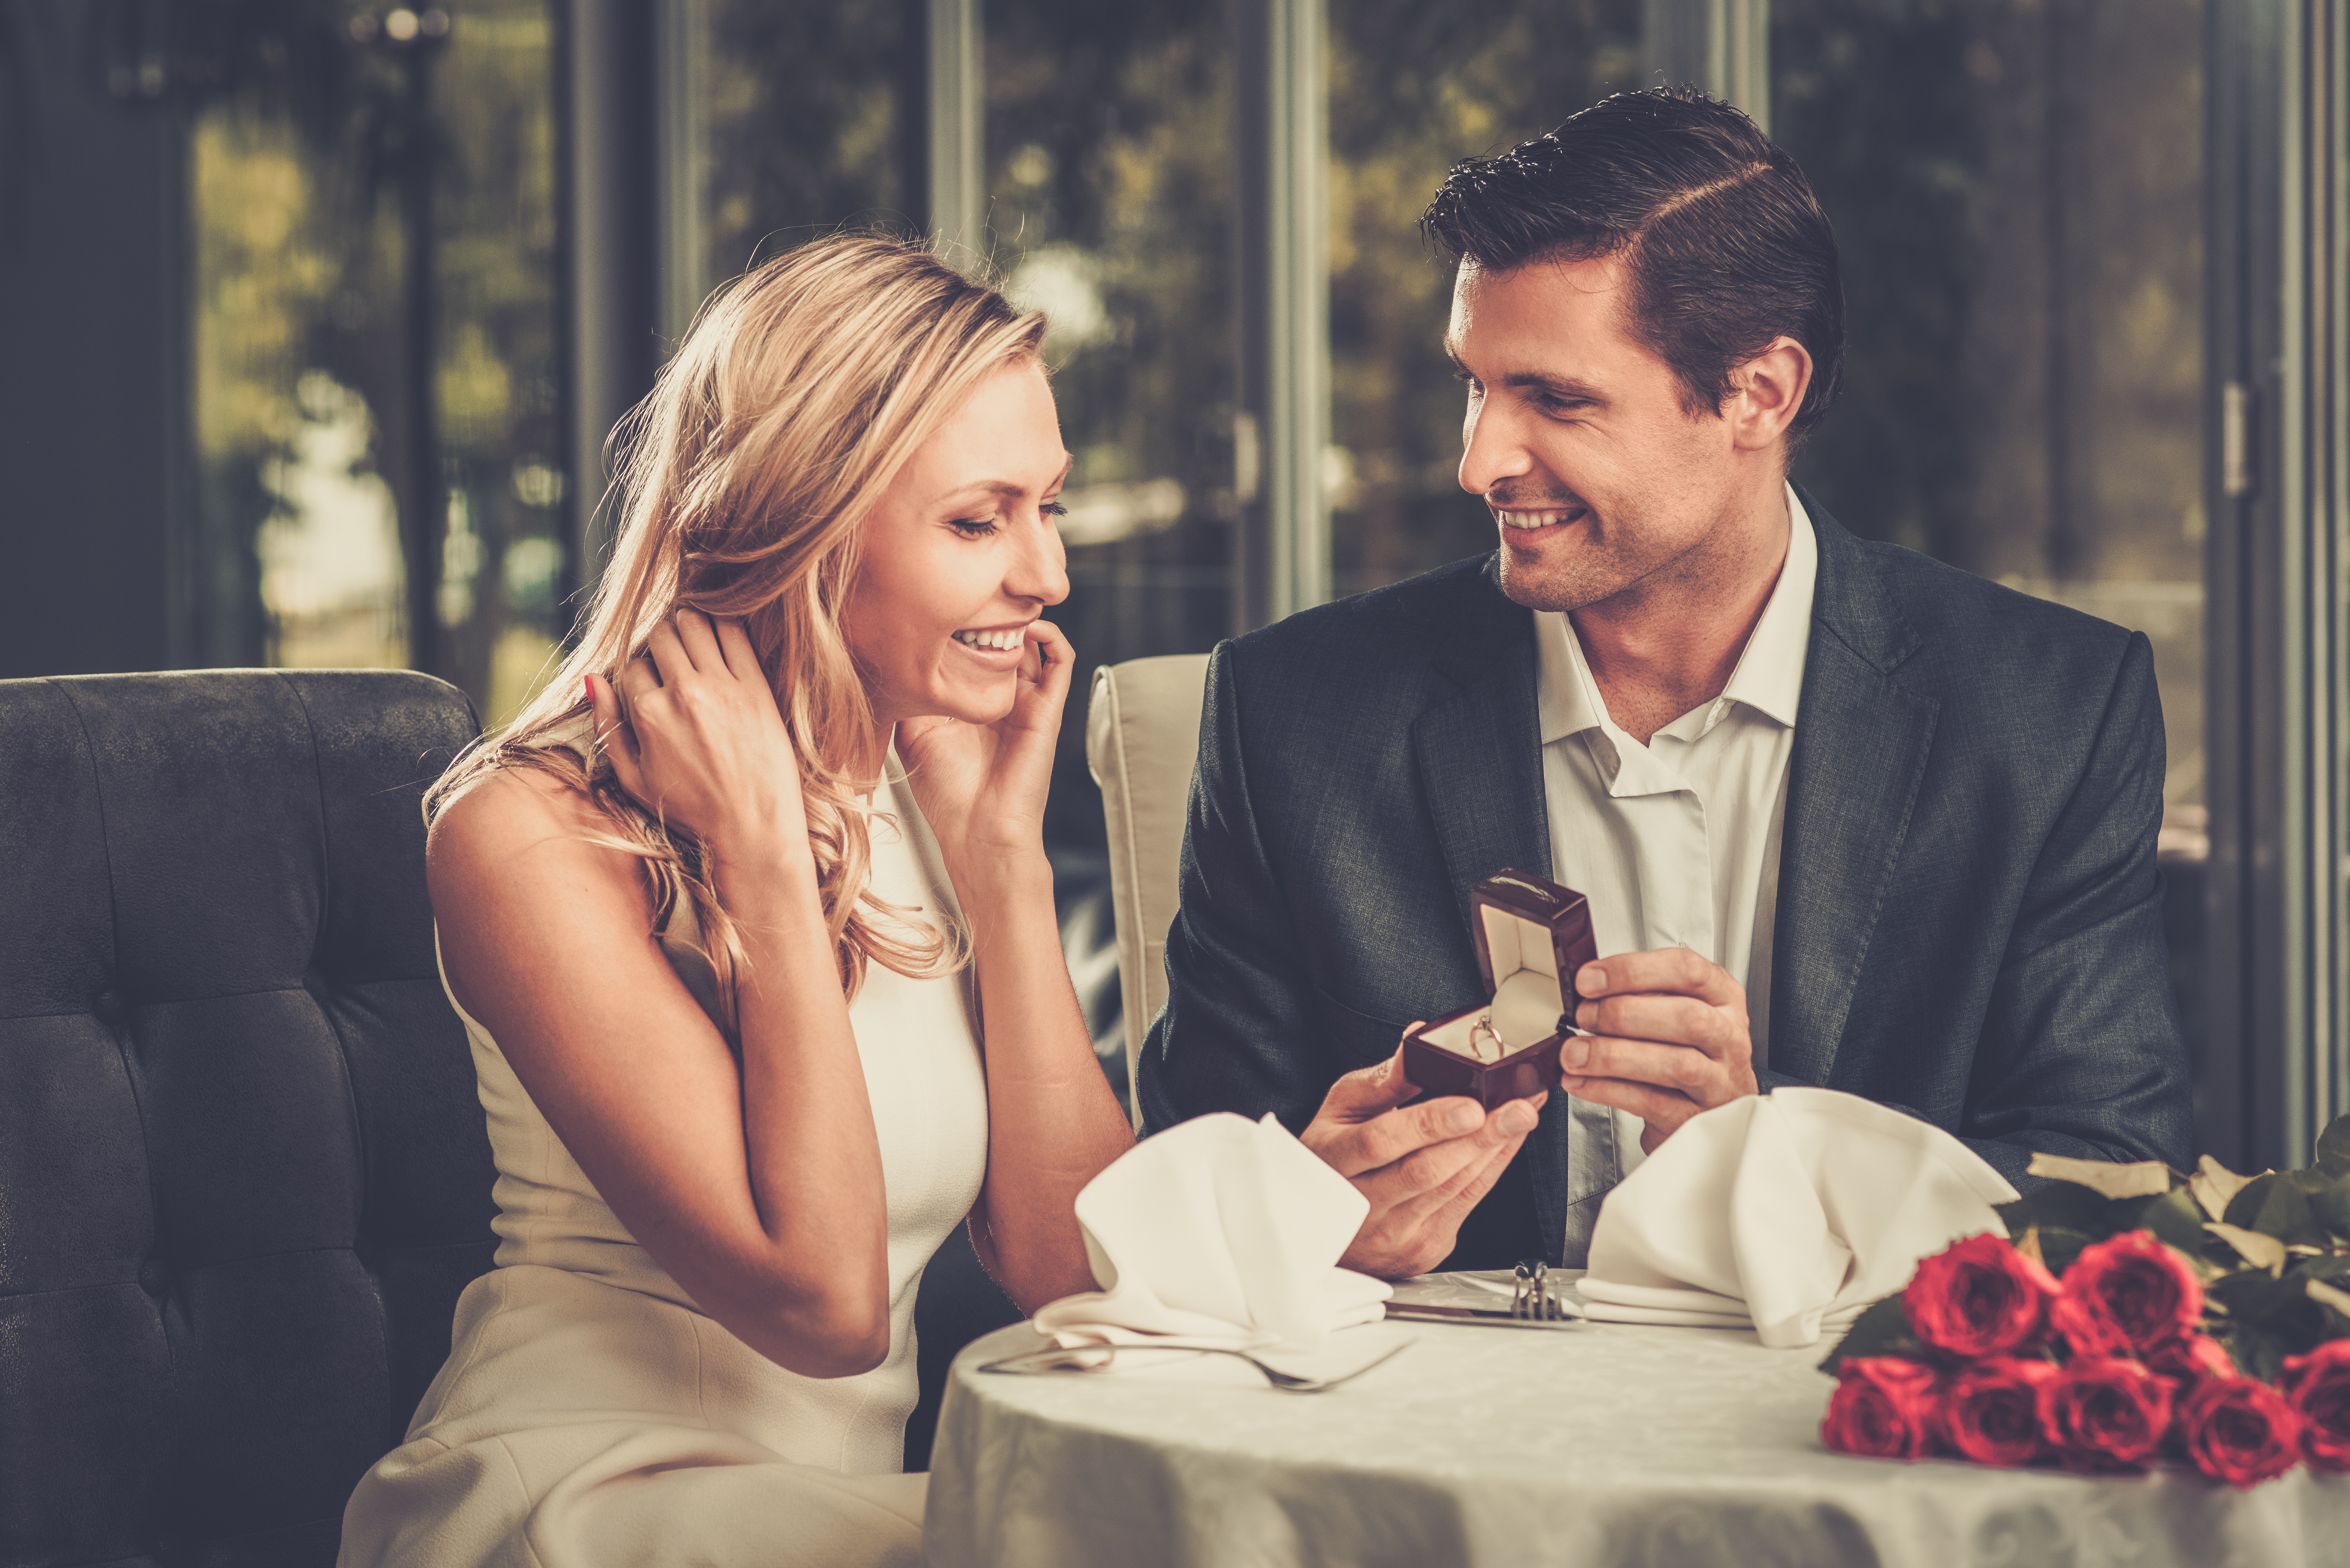 Smart Men Marry Smart Women –  Here's the Research